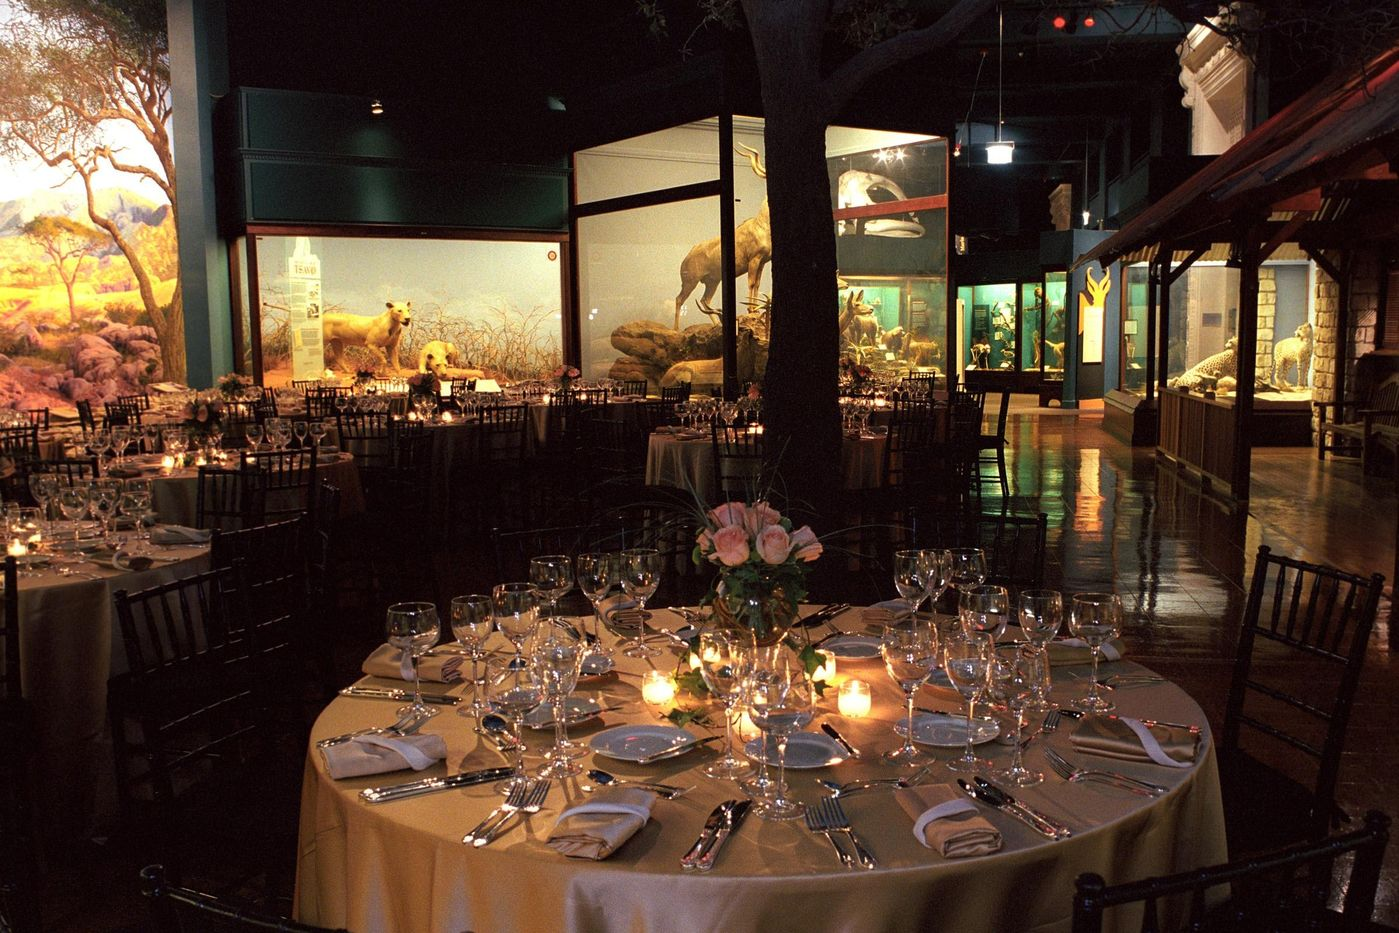 Tables, chairs and decor set up for a special event in the Rice Hall event space.